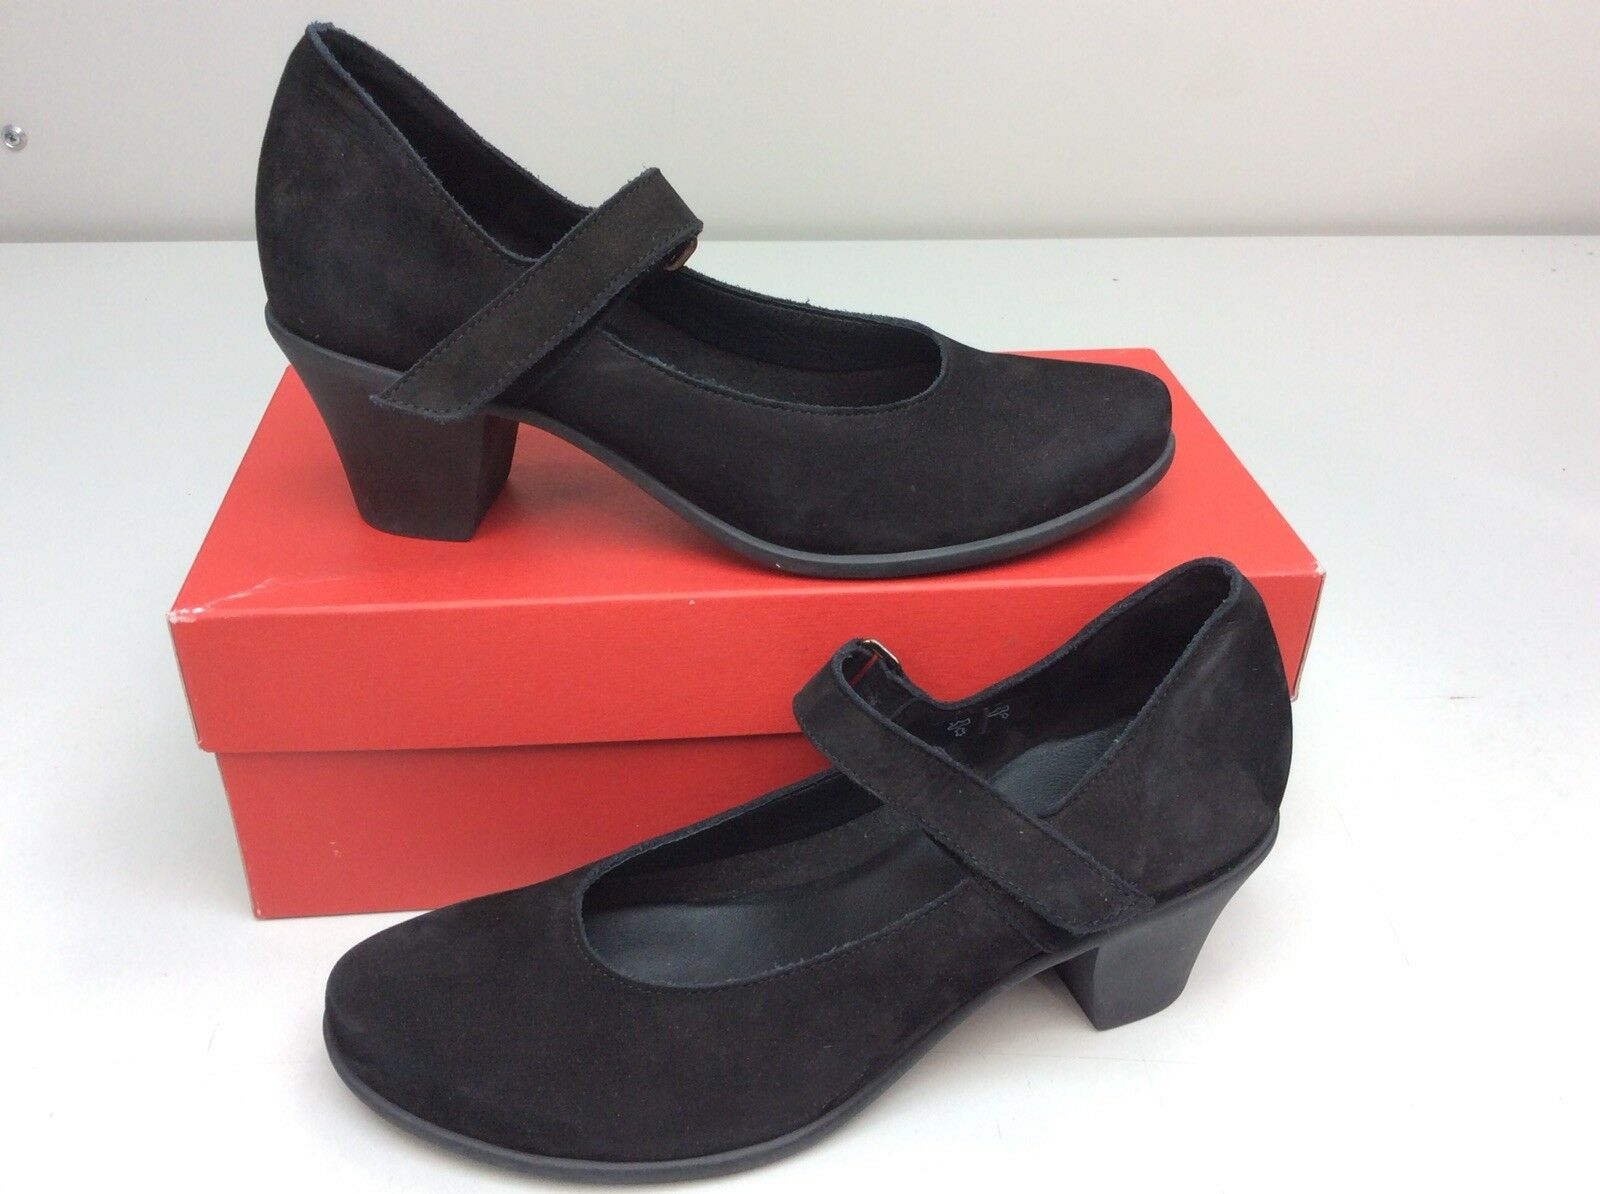 Arche Maora Mary Jane Pump black Black Size 40   US 9 Women's shoes